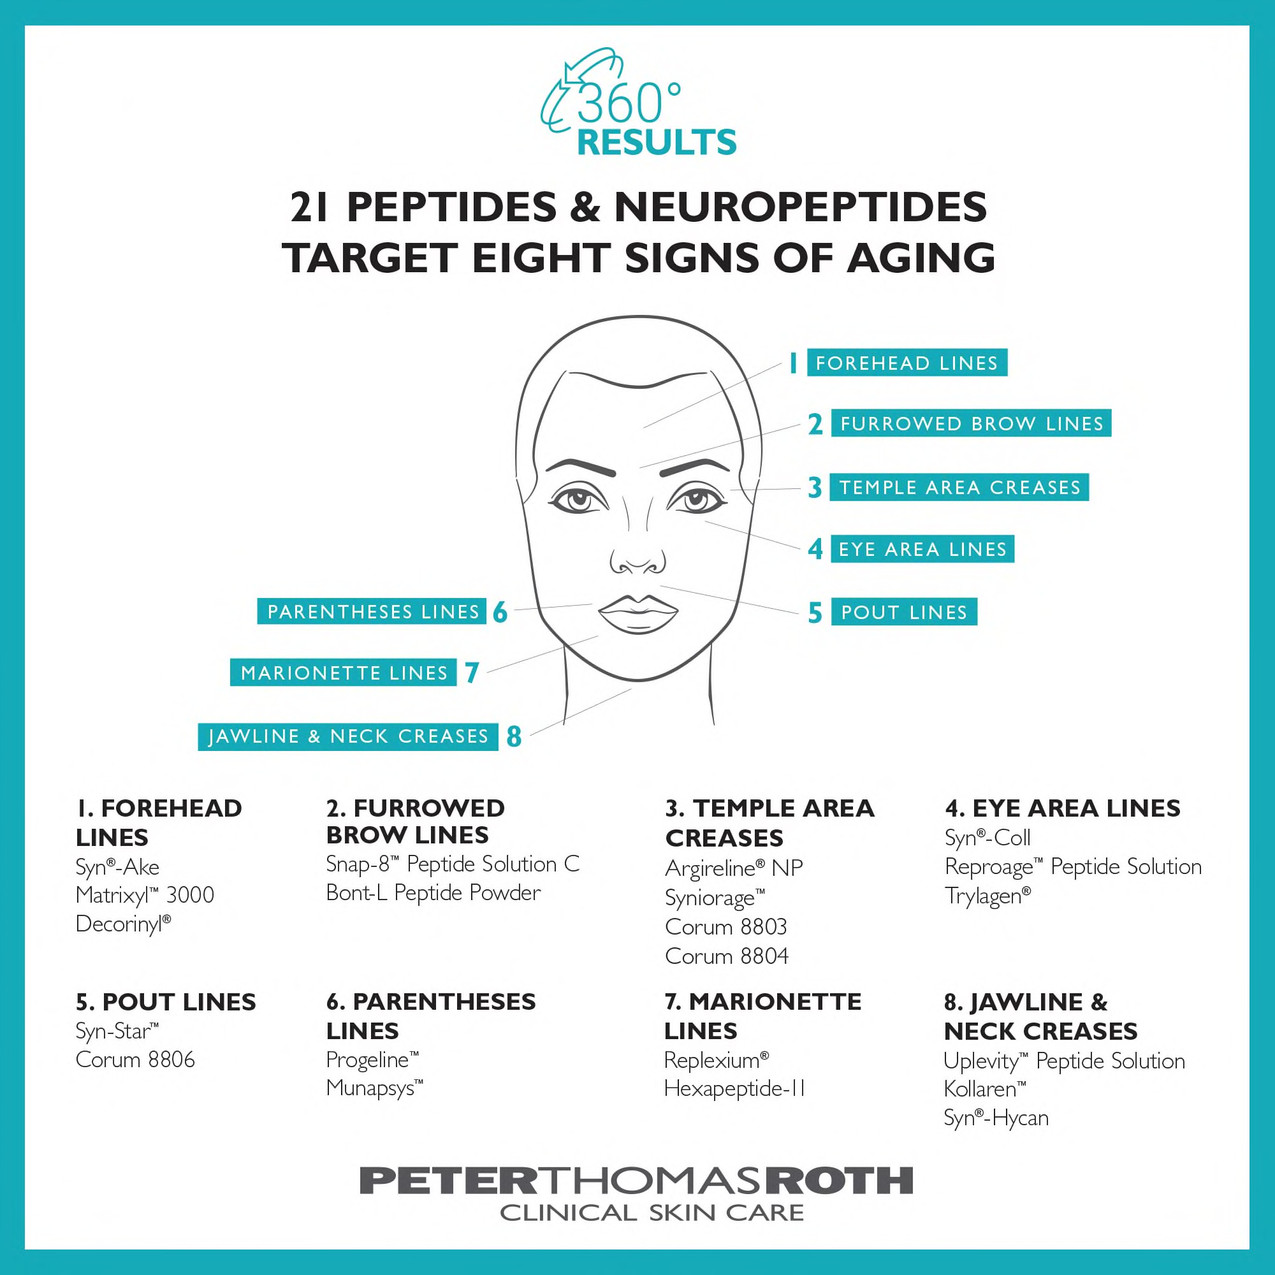 Peter Thomas Roth Signs of Aging